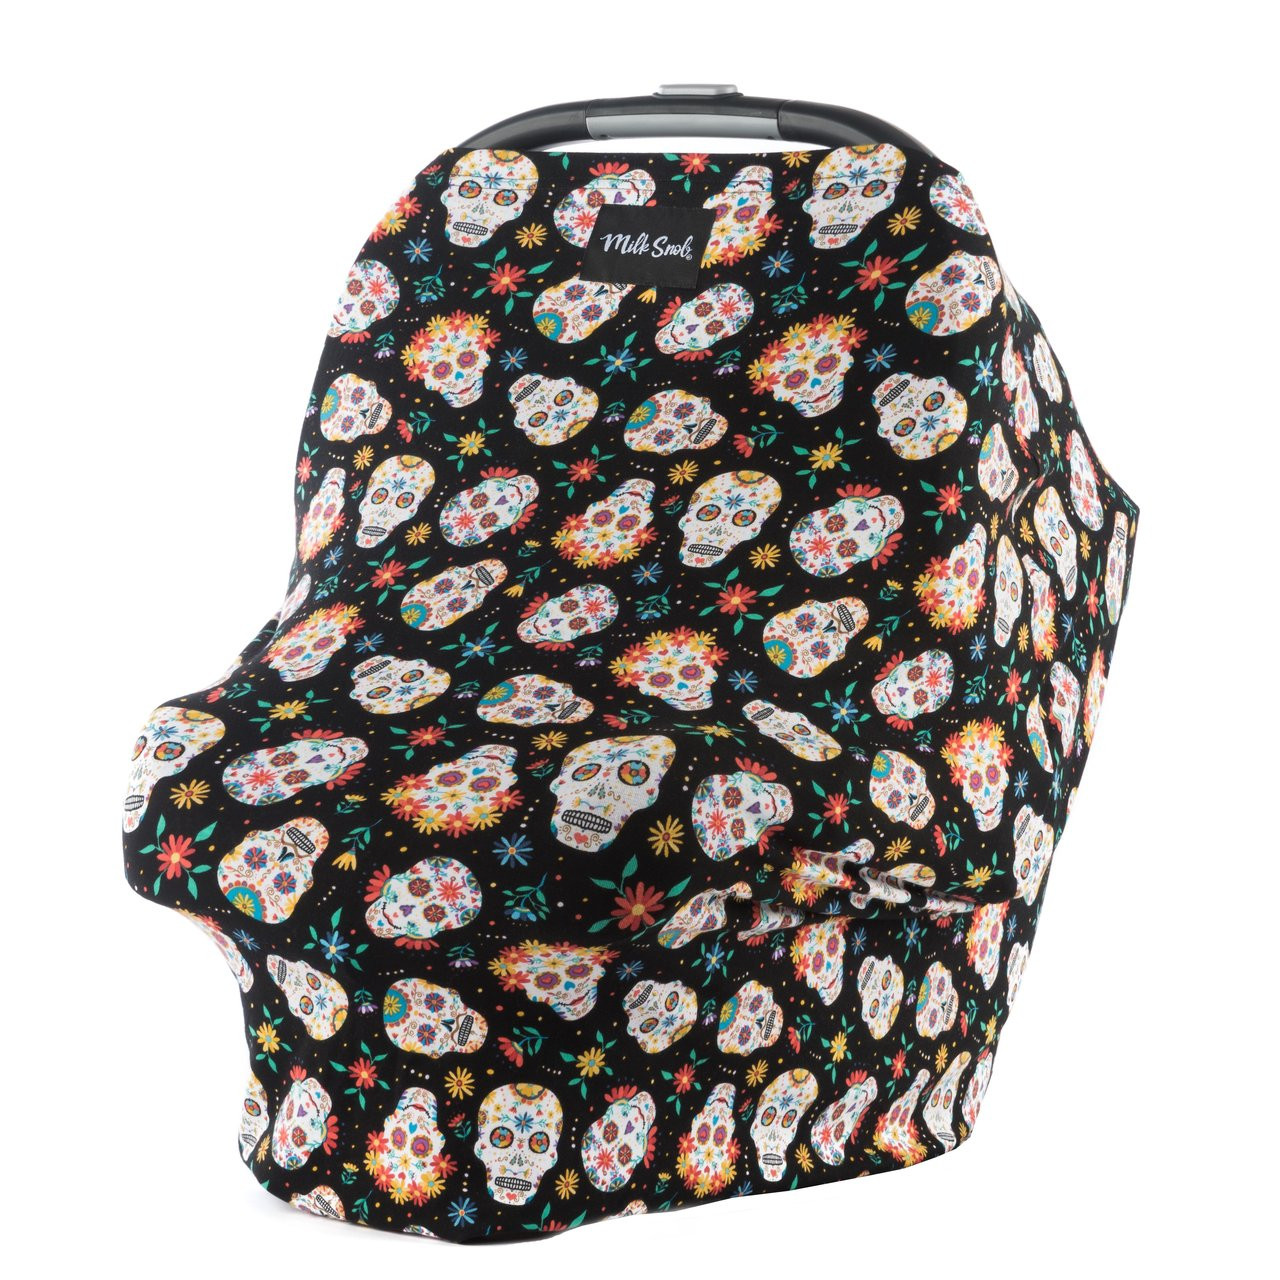 Milk Snob Car Seat Cover Sugar Skulls